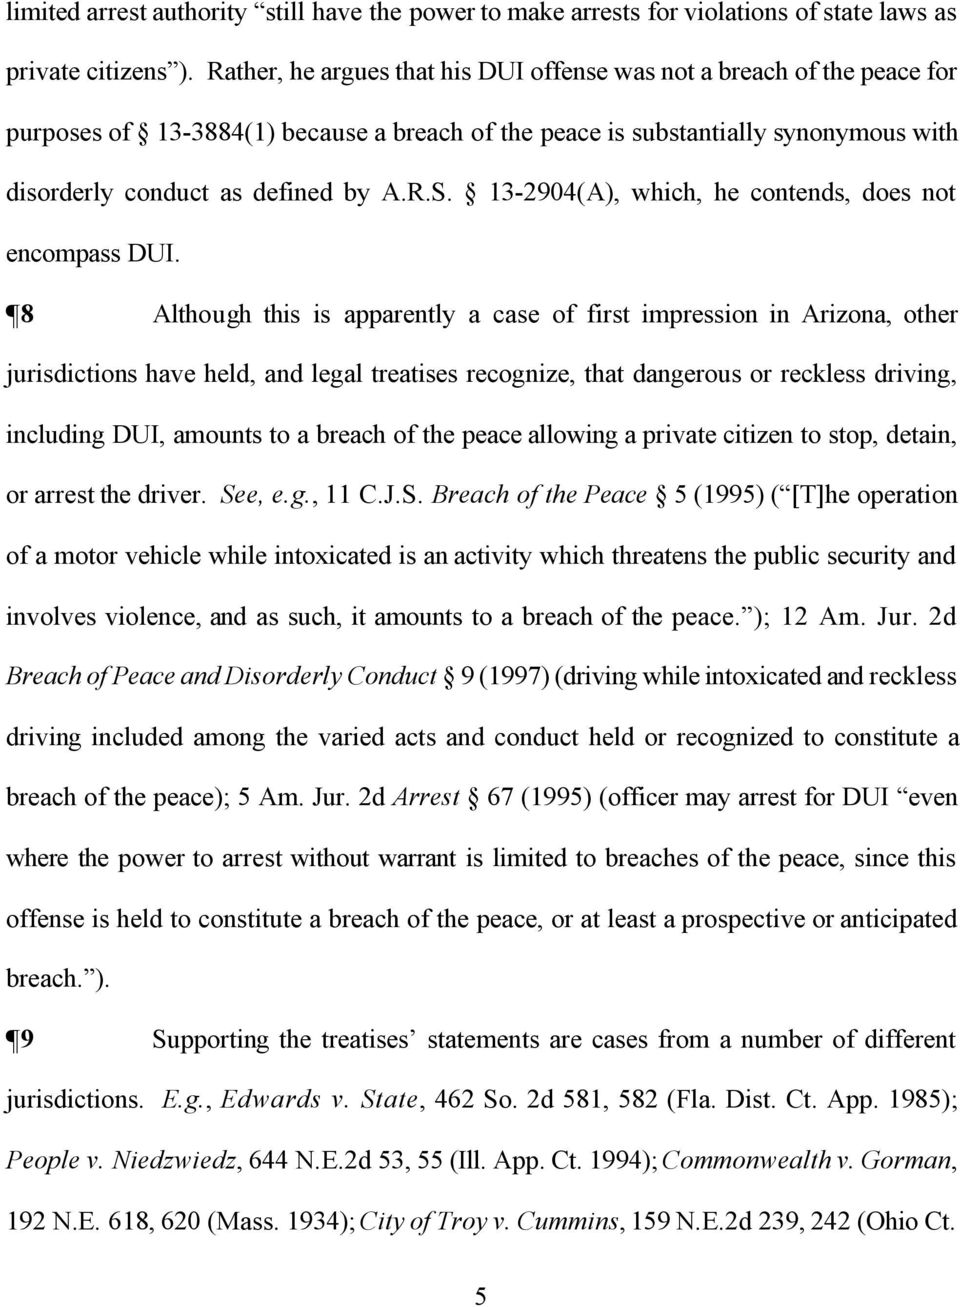 13-2904(A, which, he contends, does not encompass DUI.